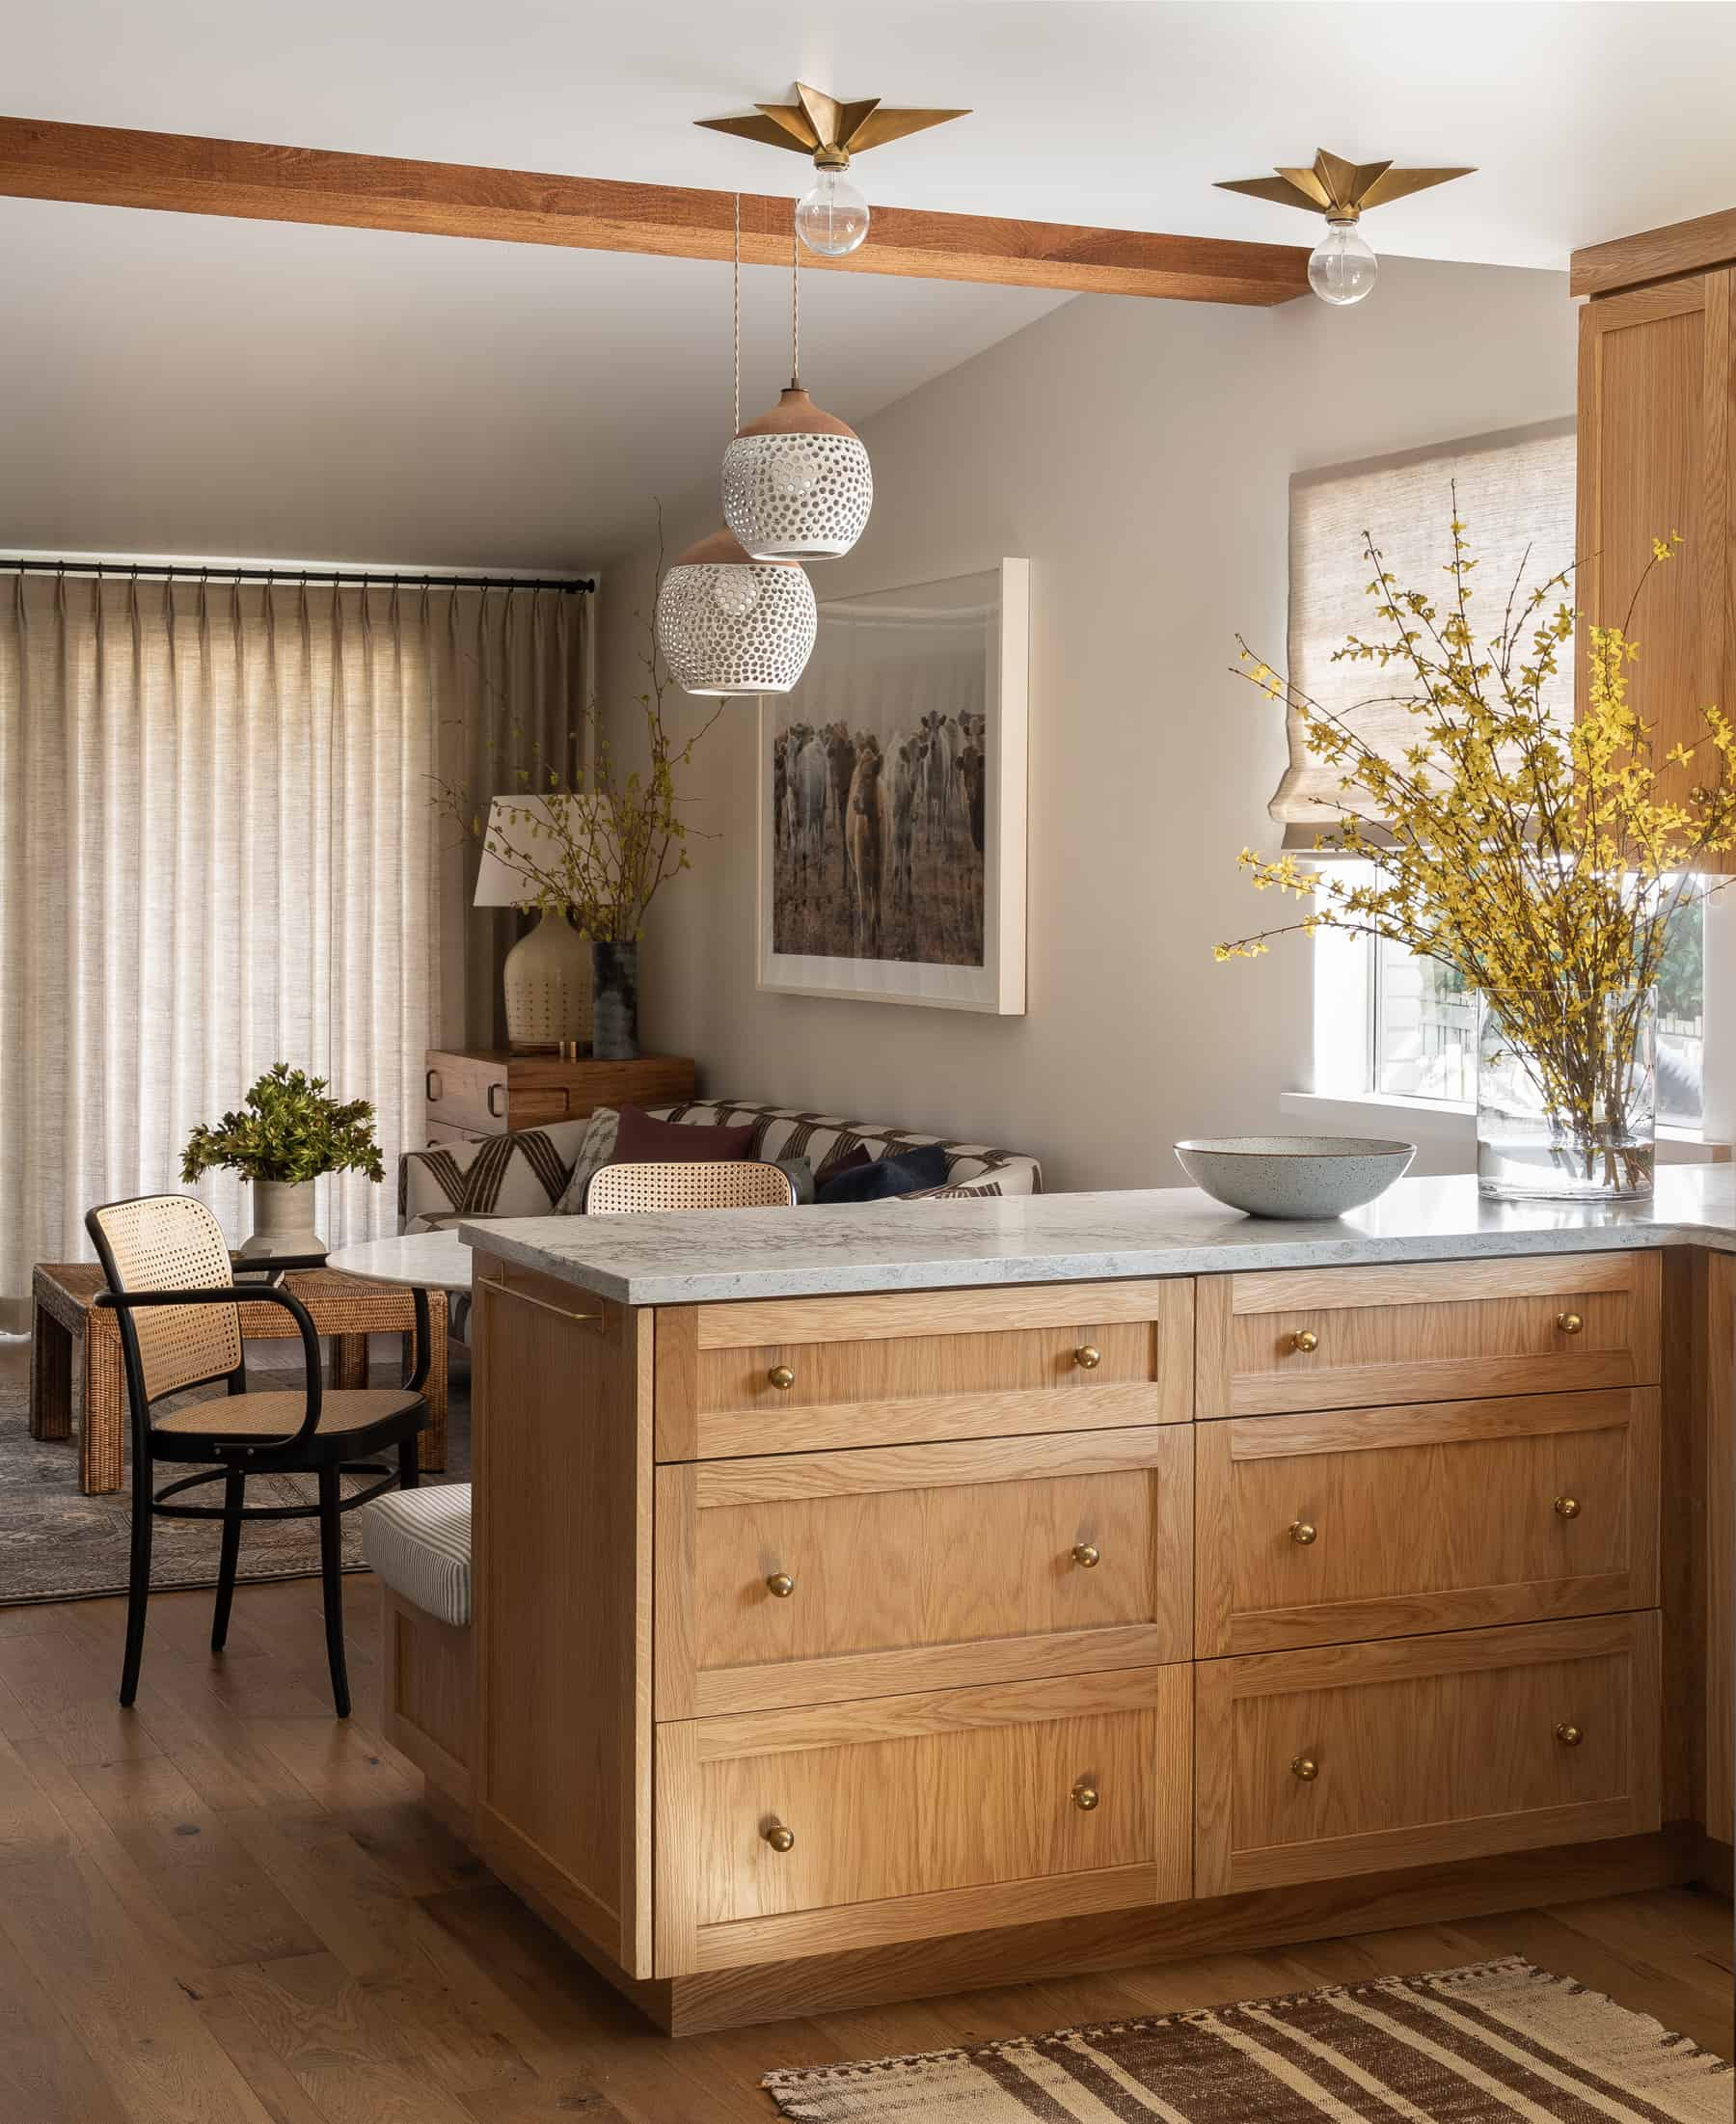 Kitchen Cabinets In Seattle: Heidi-Caillier-Design-Seattle-interior-designer-Olympic